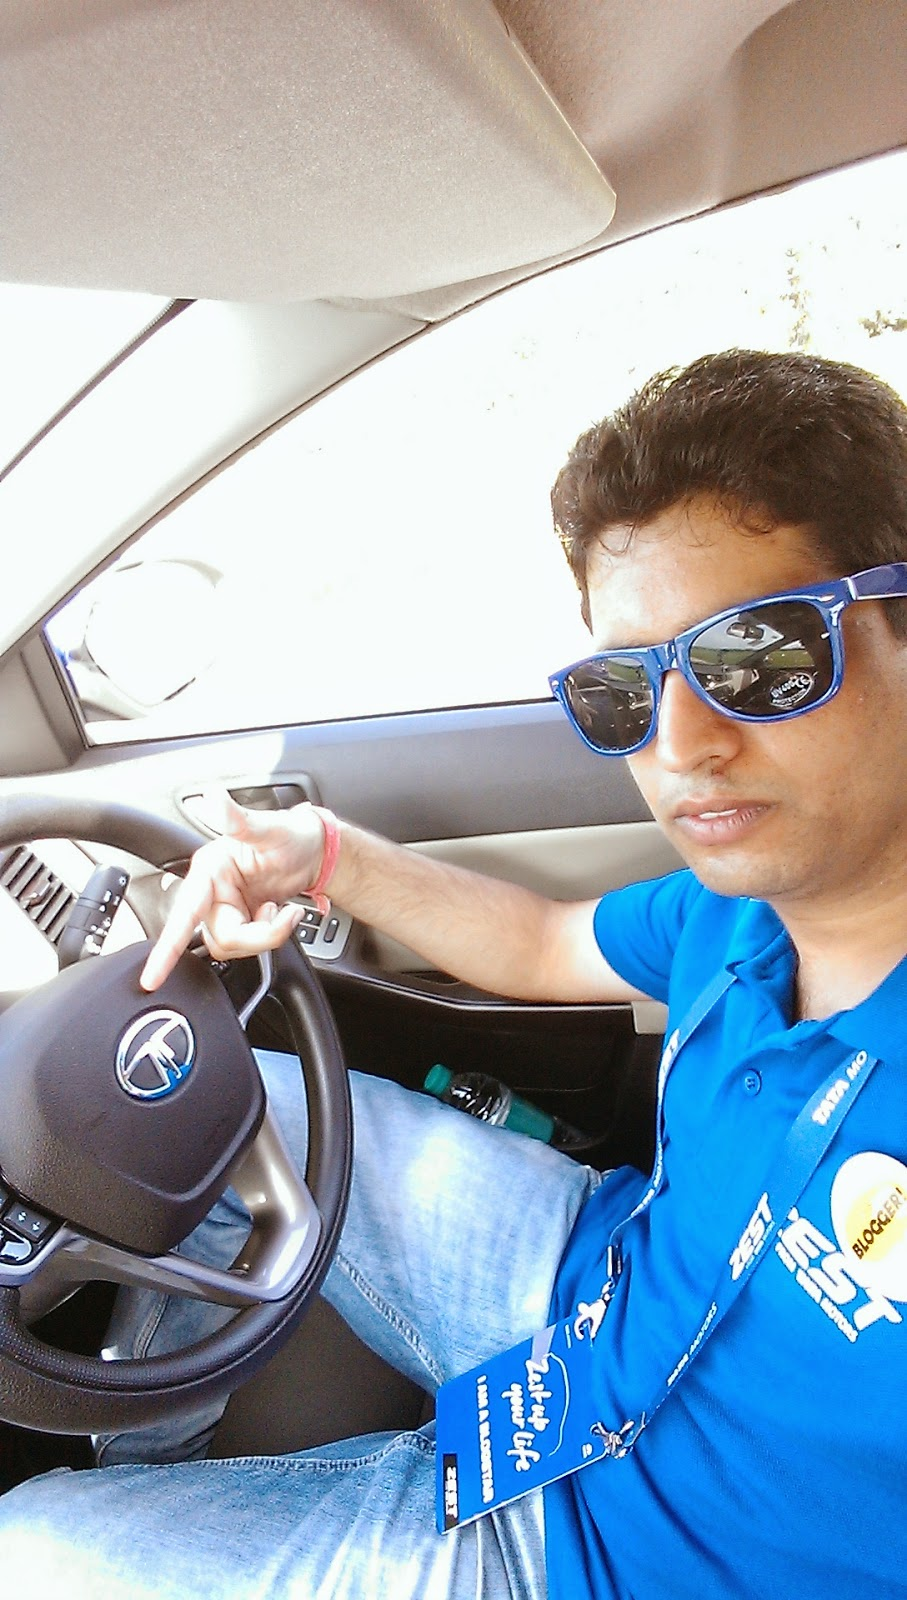 Tata Zest Review from Blogger's Eye